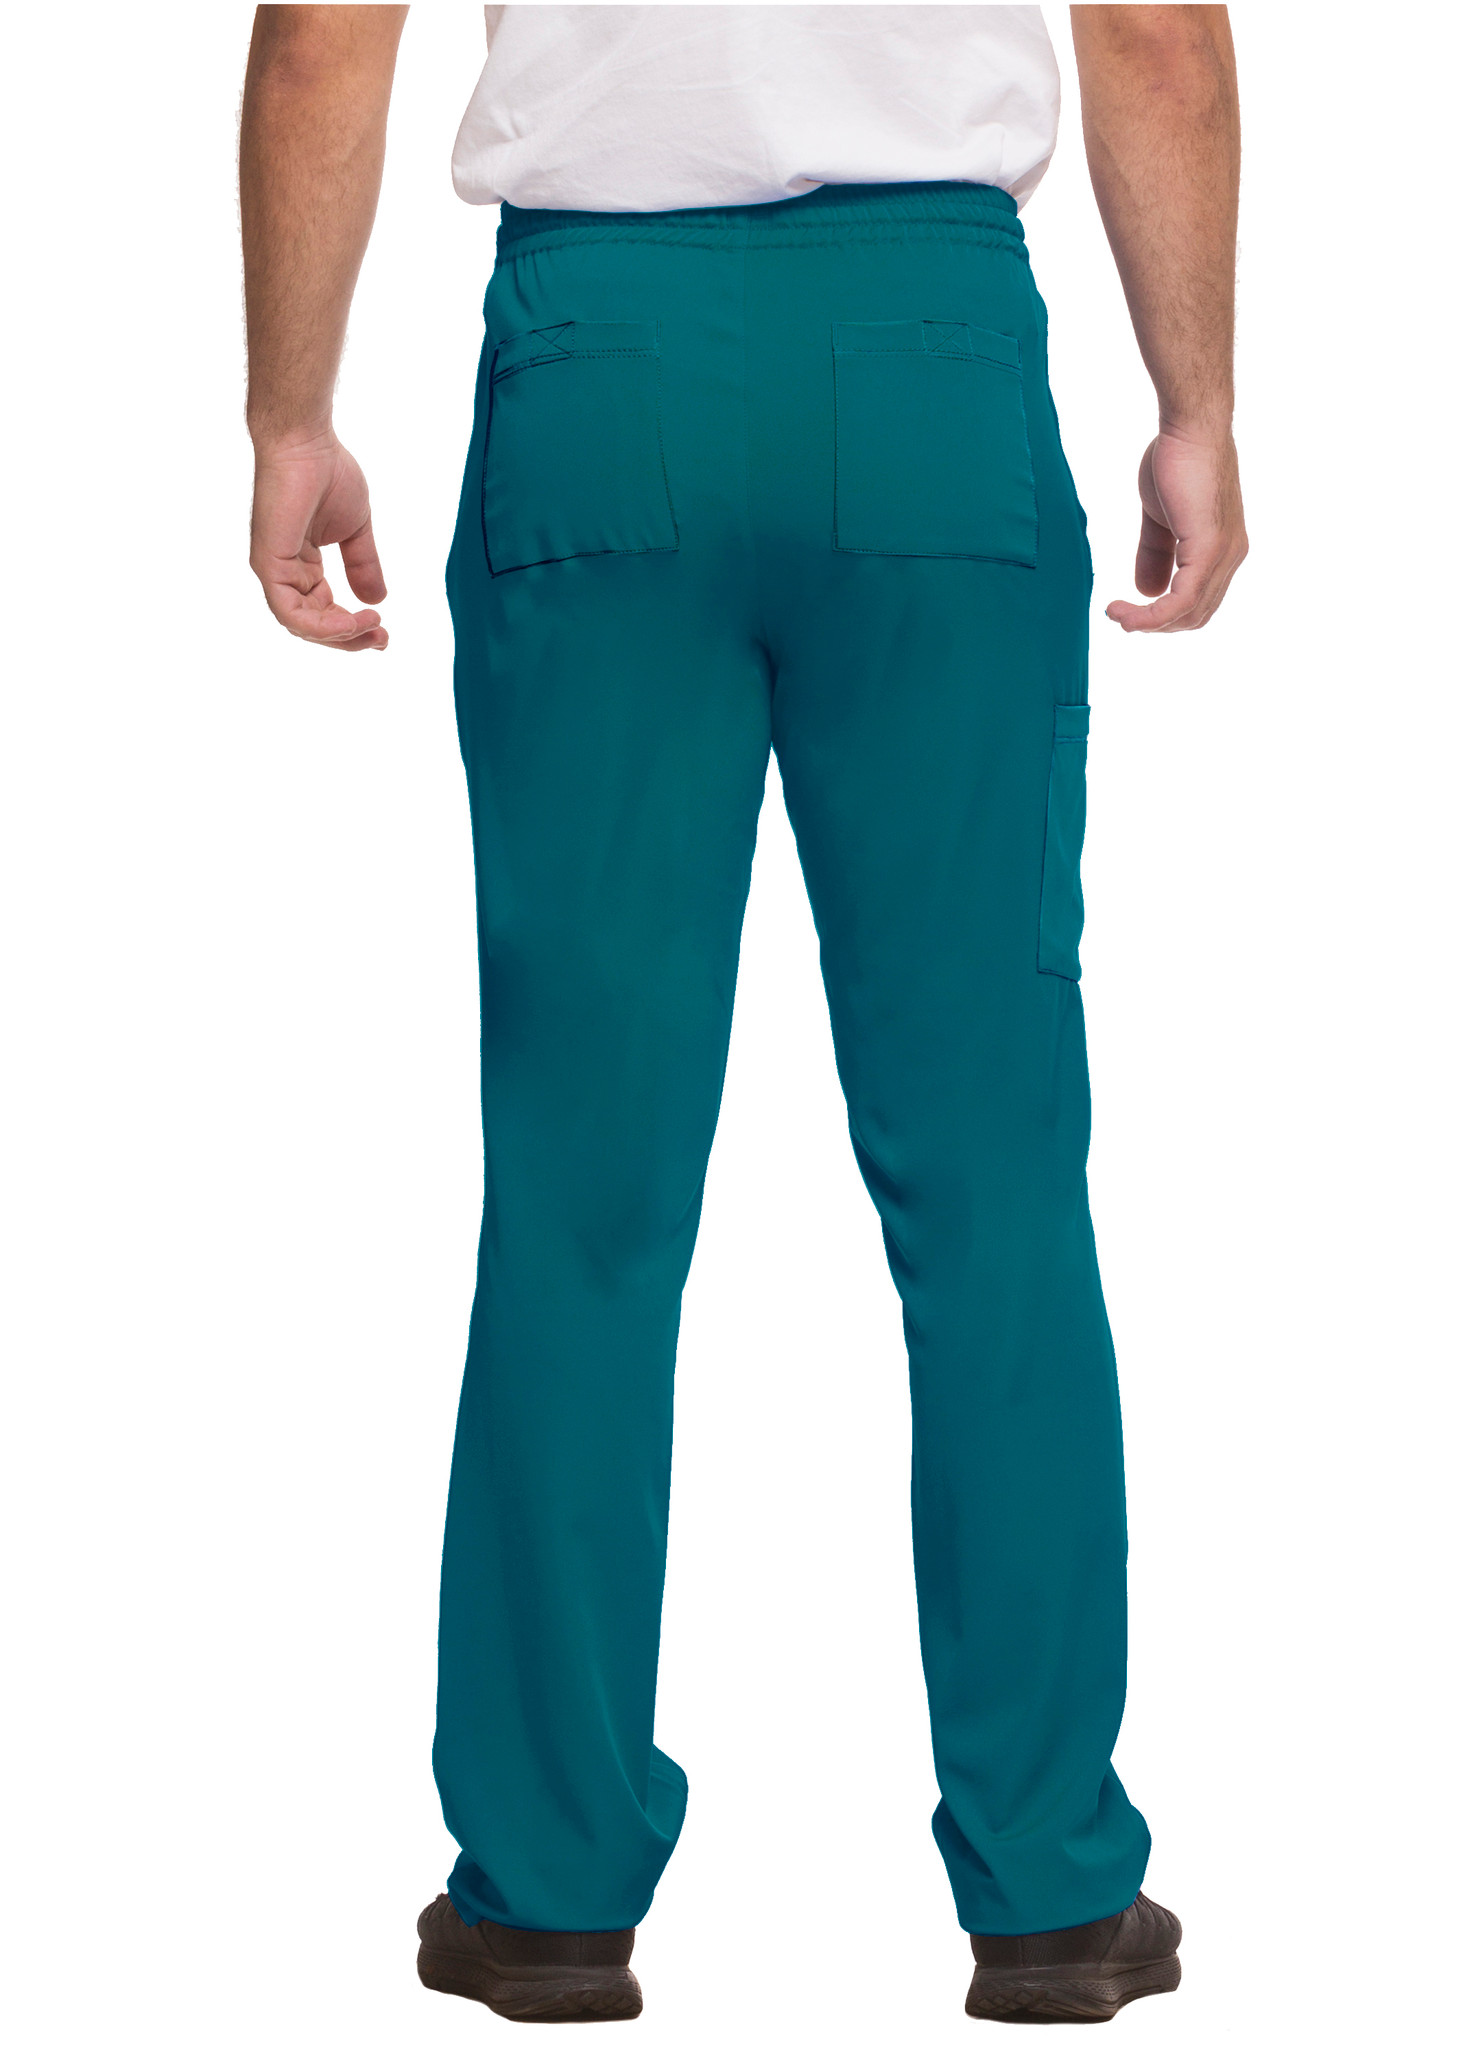 Healing Hands HH Works 9590 Ryan Men's Scrub Pant featuring drawstring tie front waist with elastic back, button and zip fly, five pockets including two back pockets and a cargo pocket, straight leg, and four way spandex stretch. Model Image back.